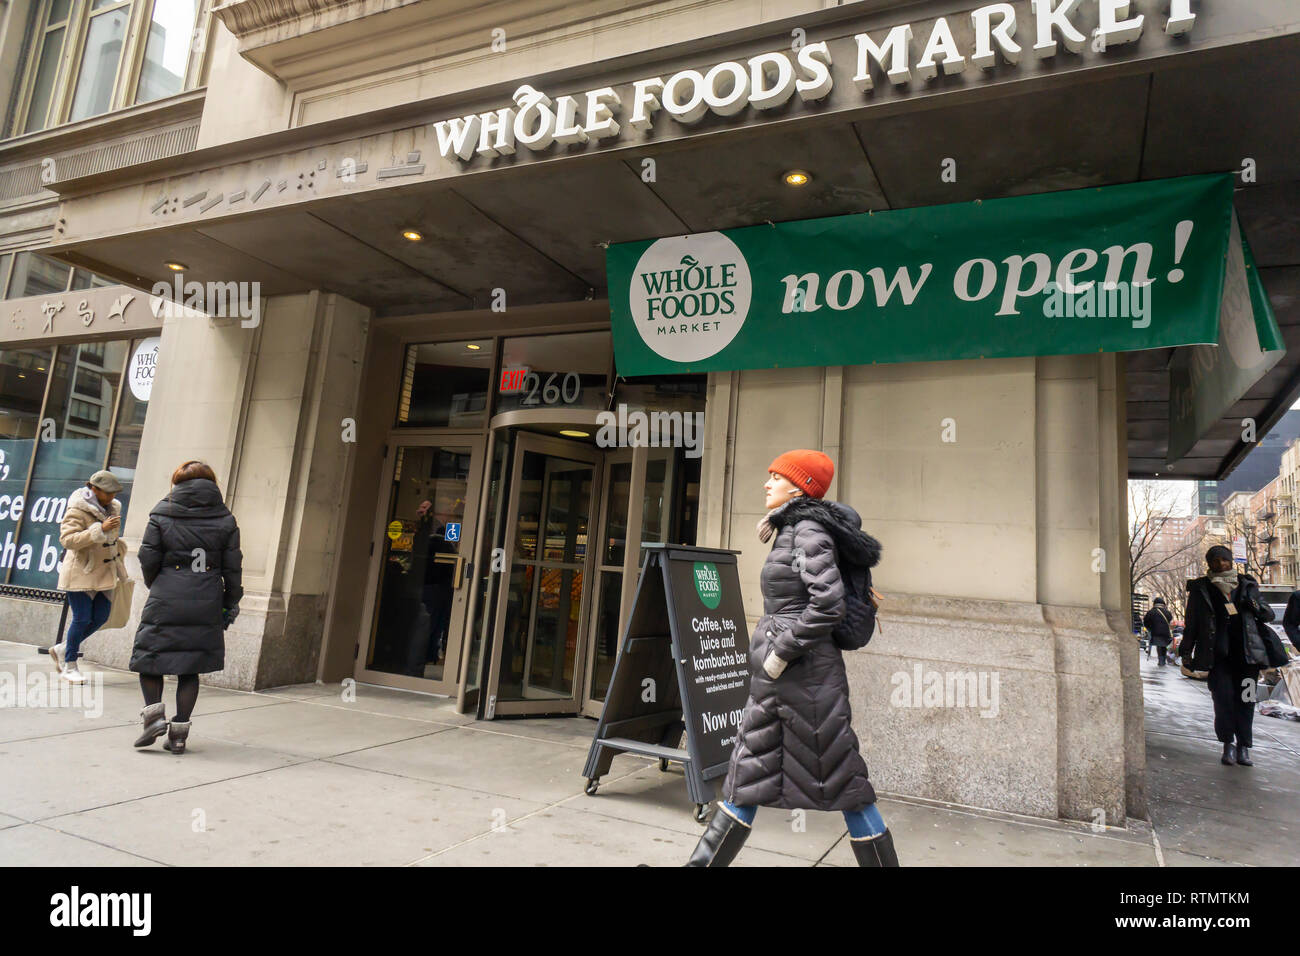 A miniature Whole Foods Market in the Chelsea neighborhood of New York on opening day, Friday, March , 2019. Located in the former space occupied by Whole Foods' beauty and health products the miniature location sells snacks and prepared foods as well as hosting a coffee and kombucha bar. Amazon, the owner of Whole Foods Market, announced it will be opening a chain of supermarkets with a price point lower than WFM and with a smaller footprint, although not as small as this store. (© Richard B. Levine) Stock Photo